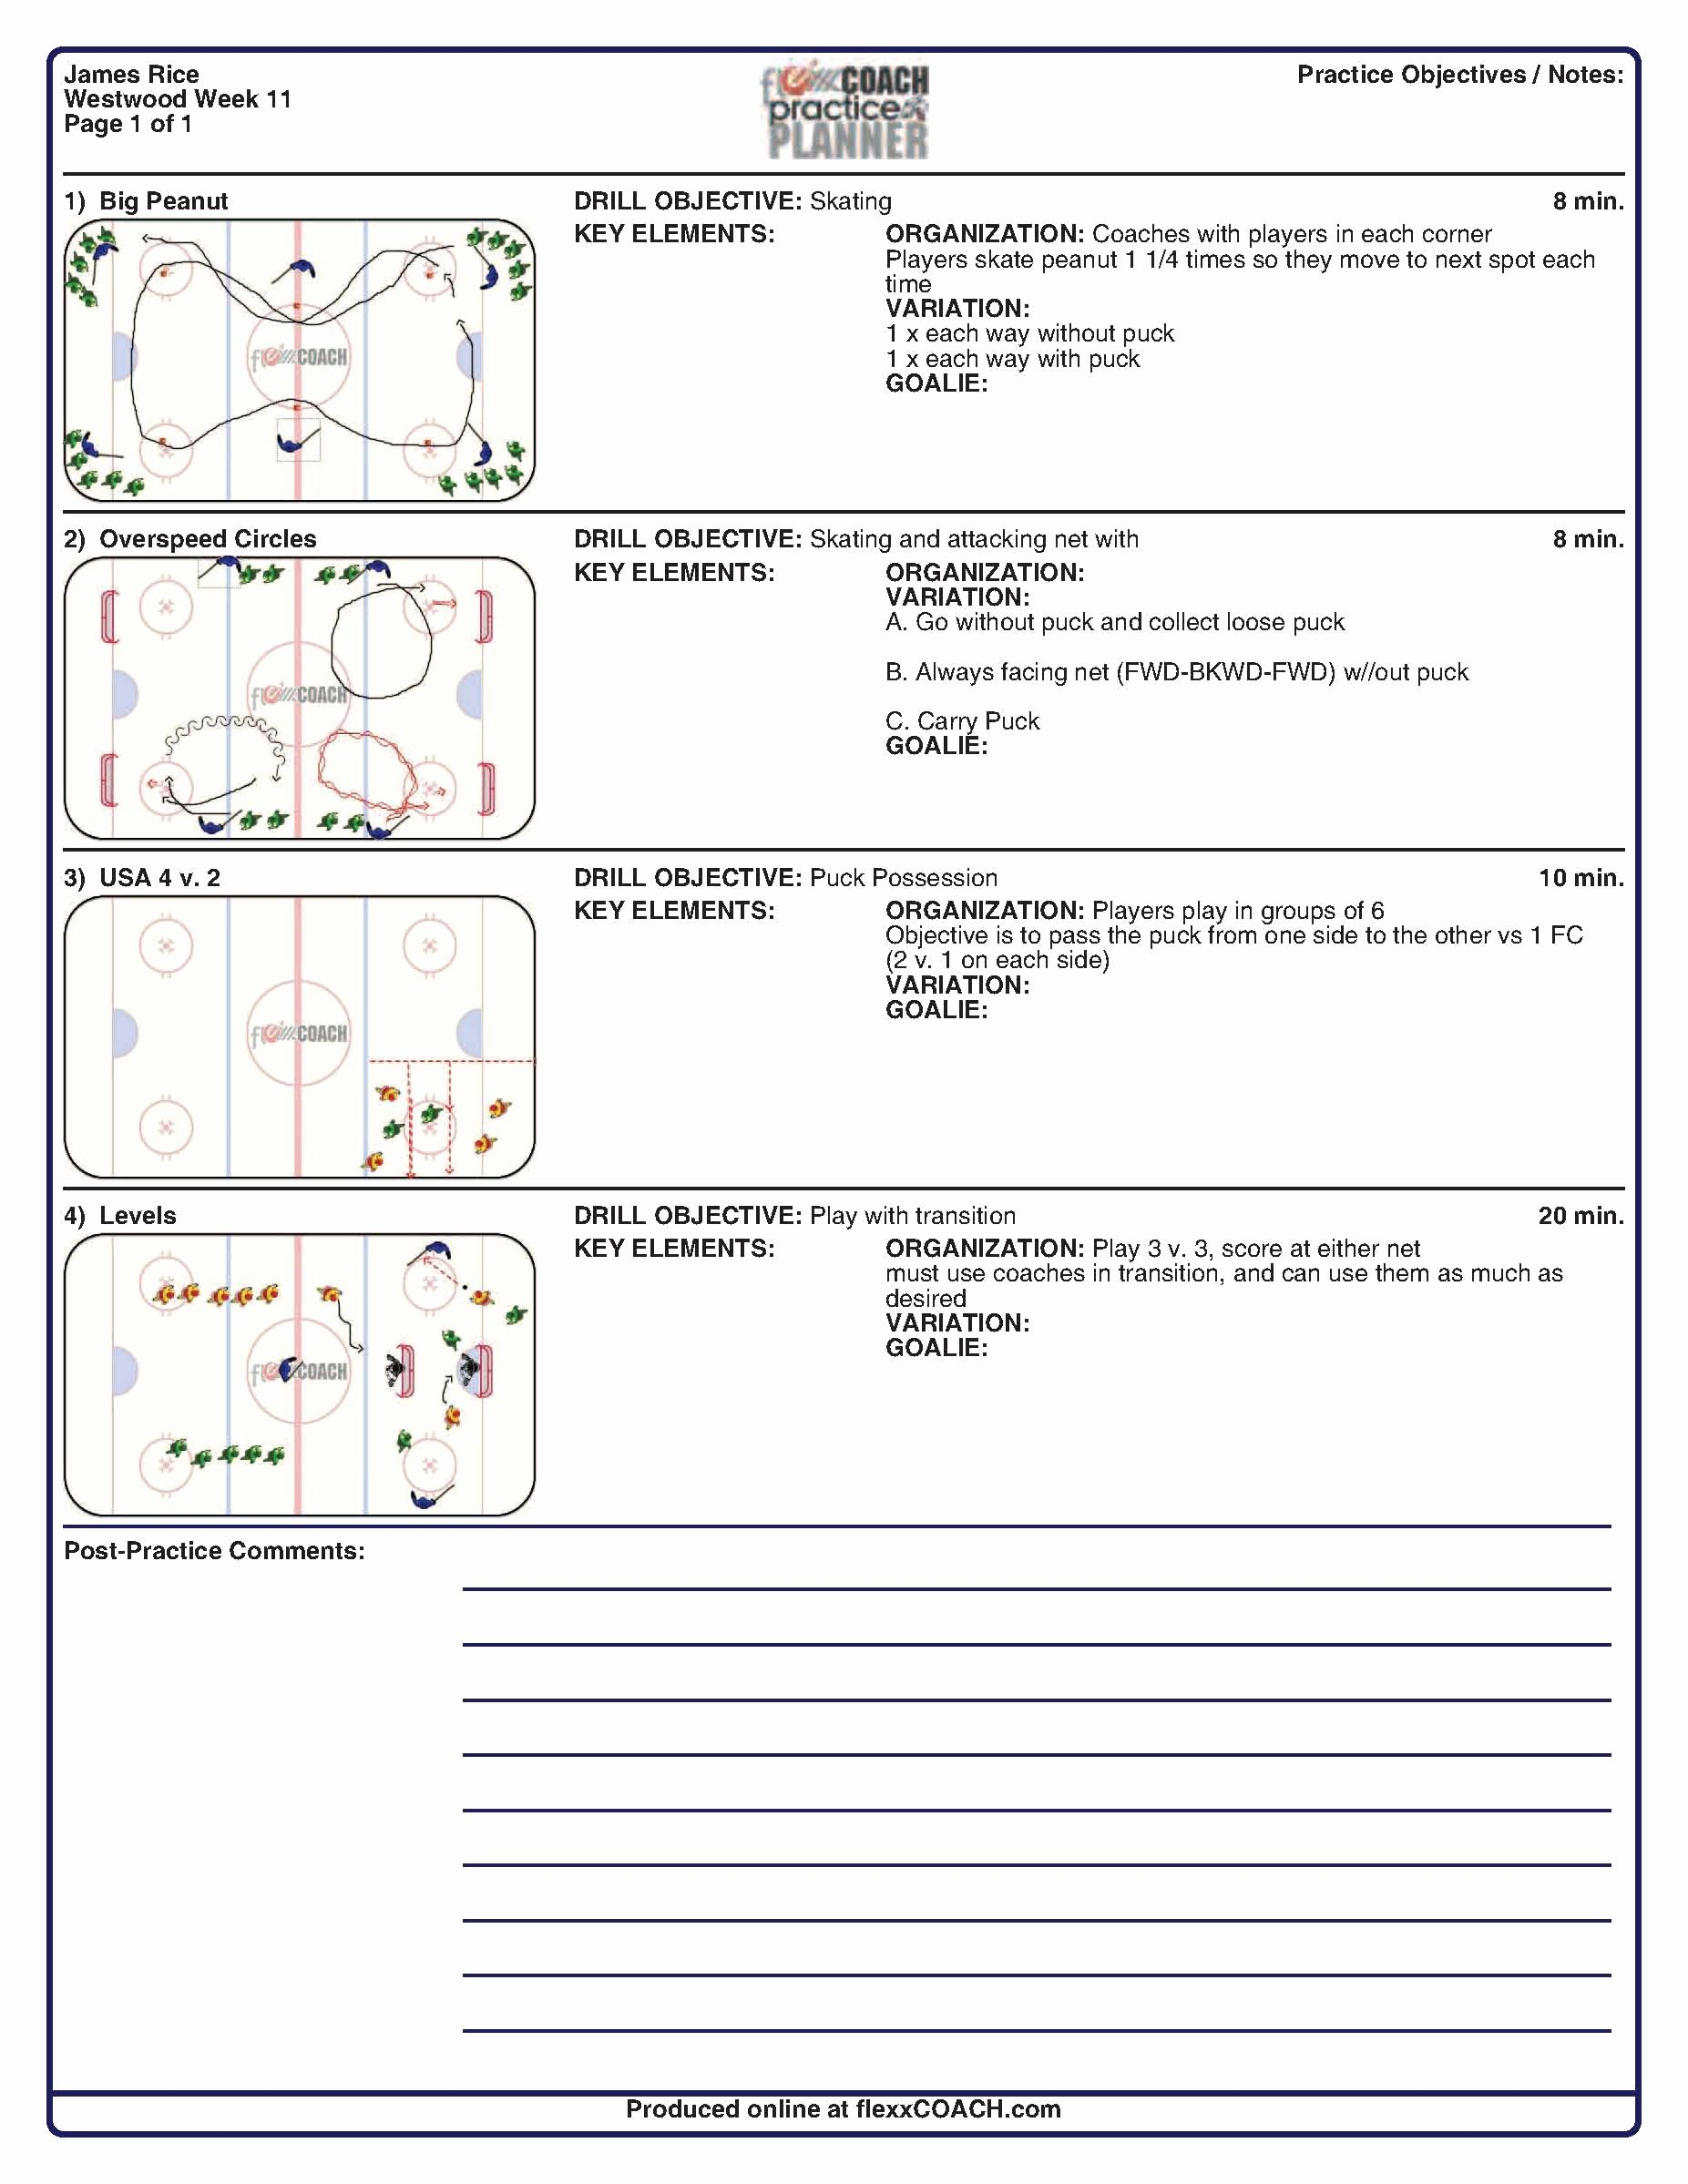 Softball Practice Plan Template Awesome 28 Of softball Practice Plan Template Printable